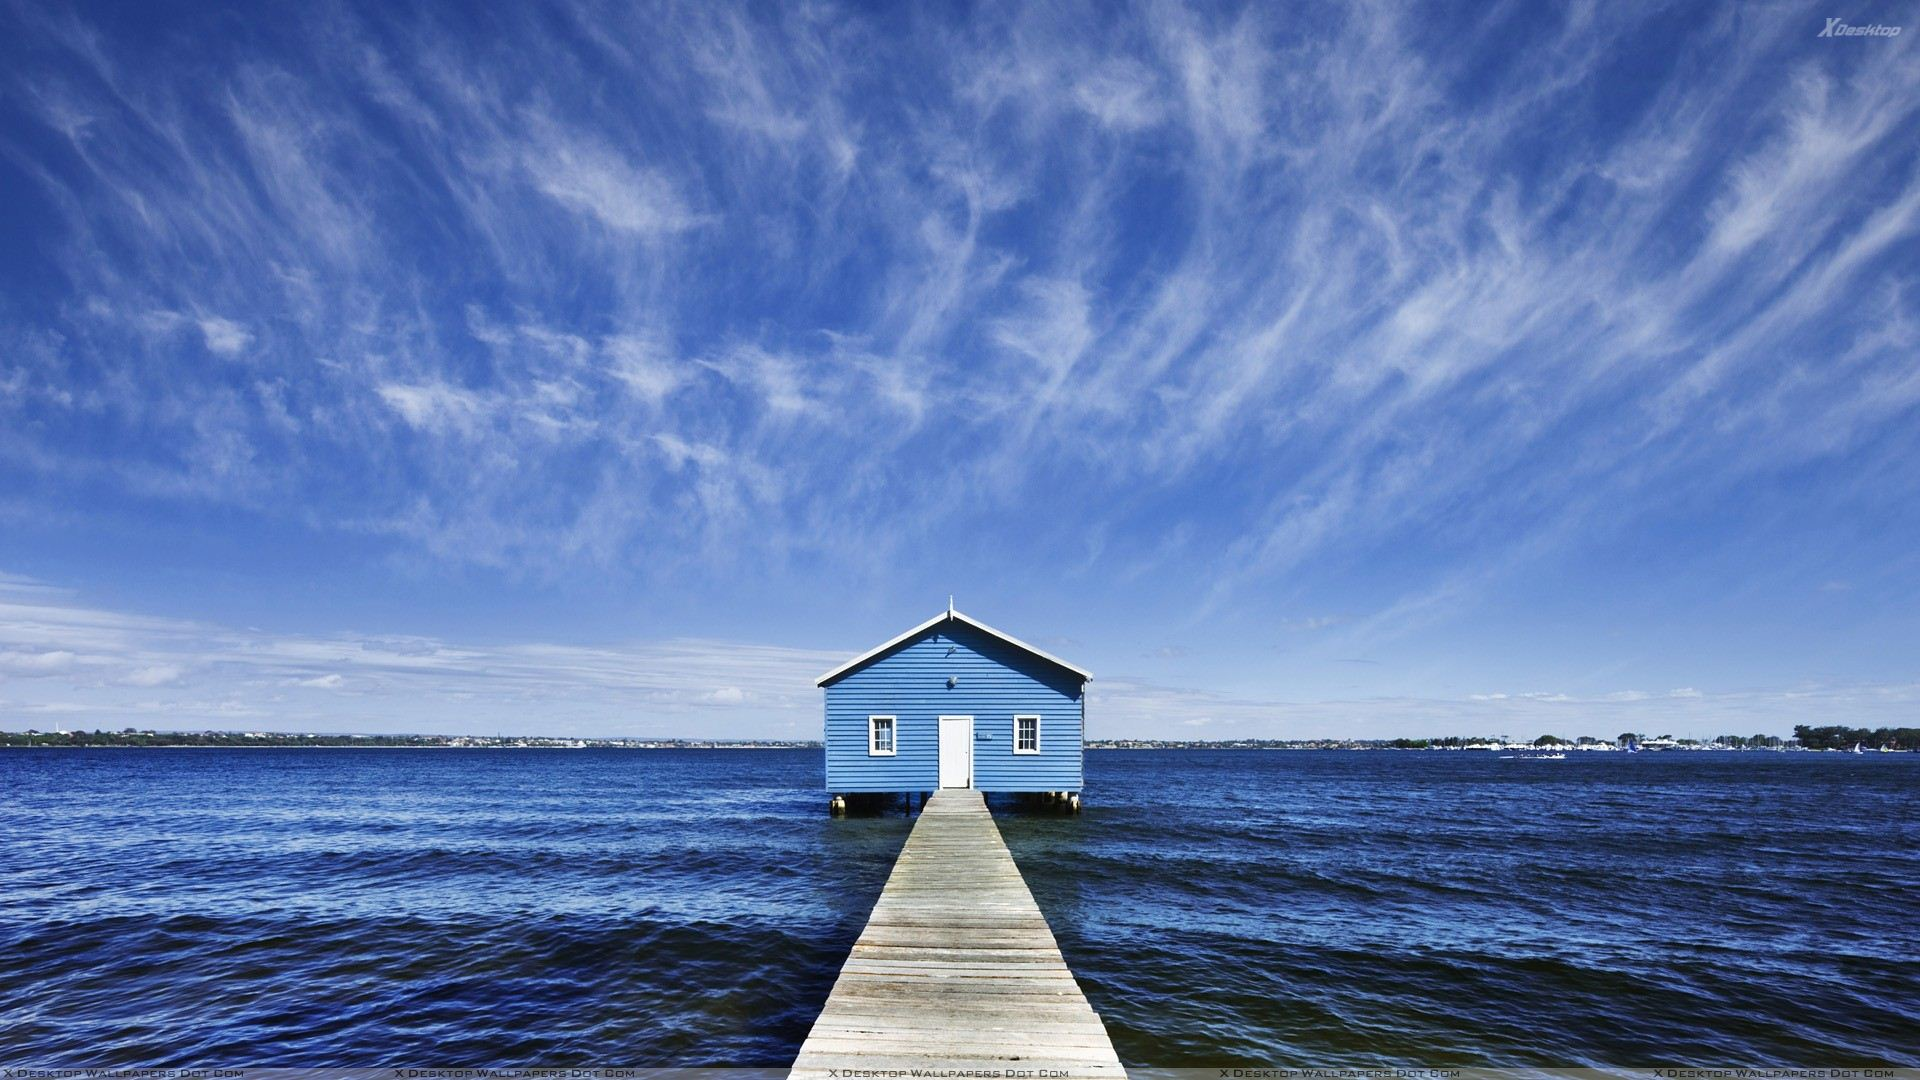 A House In Middle Of A Sea Wallpaper